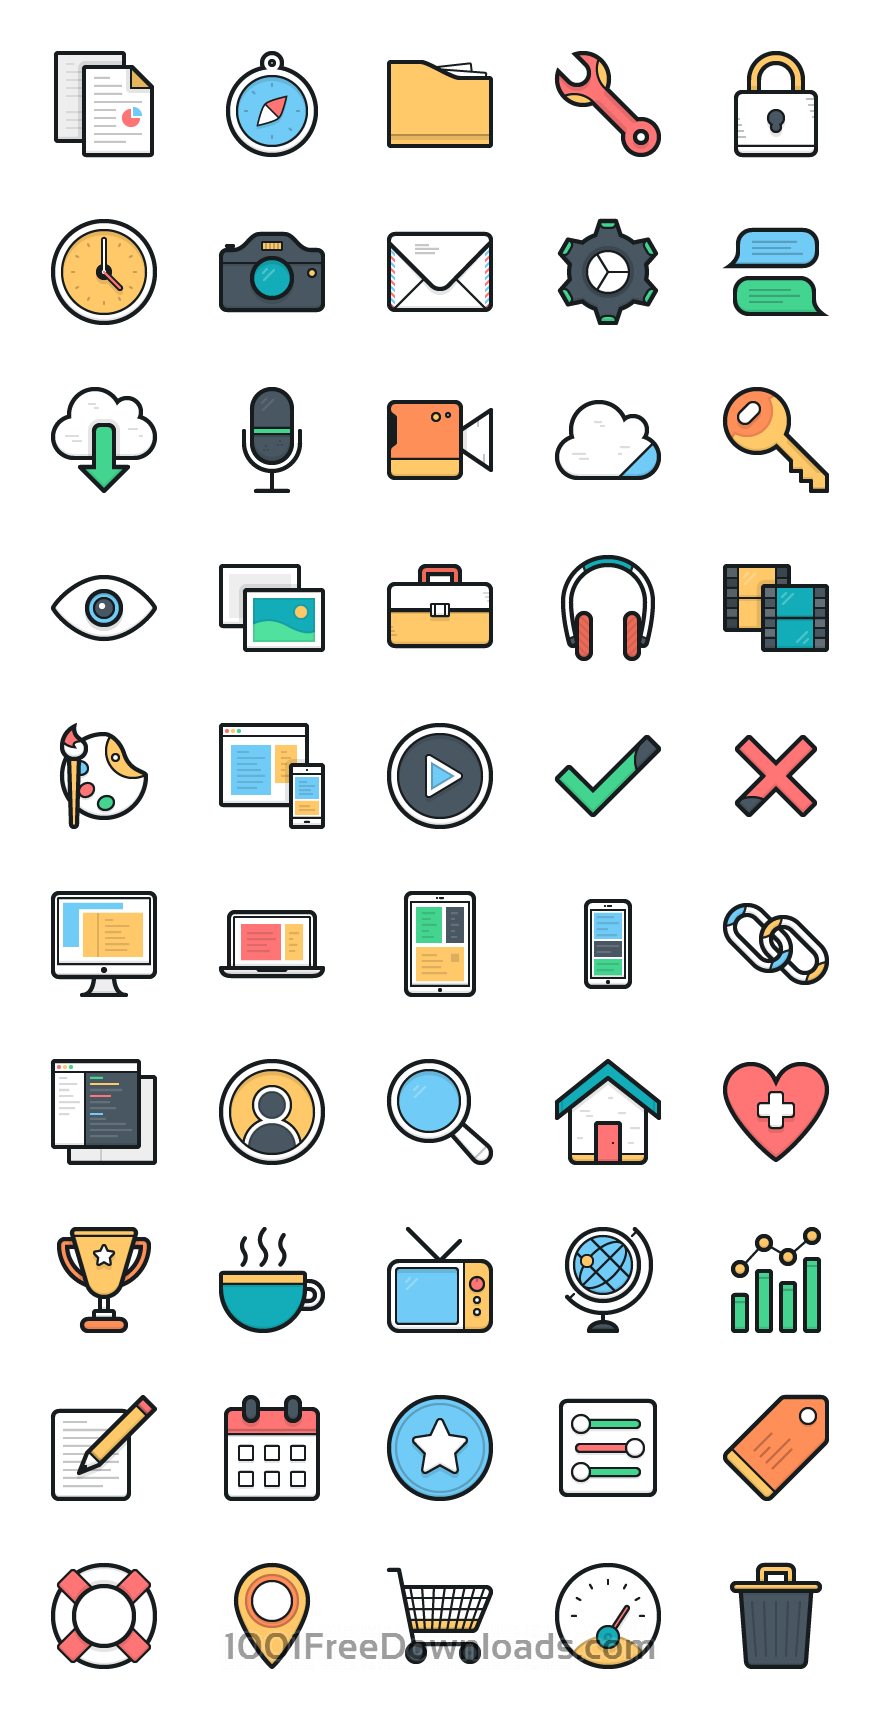 Free Vectors: Lulu Icons - Set 1